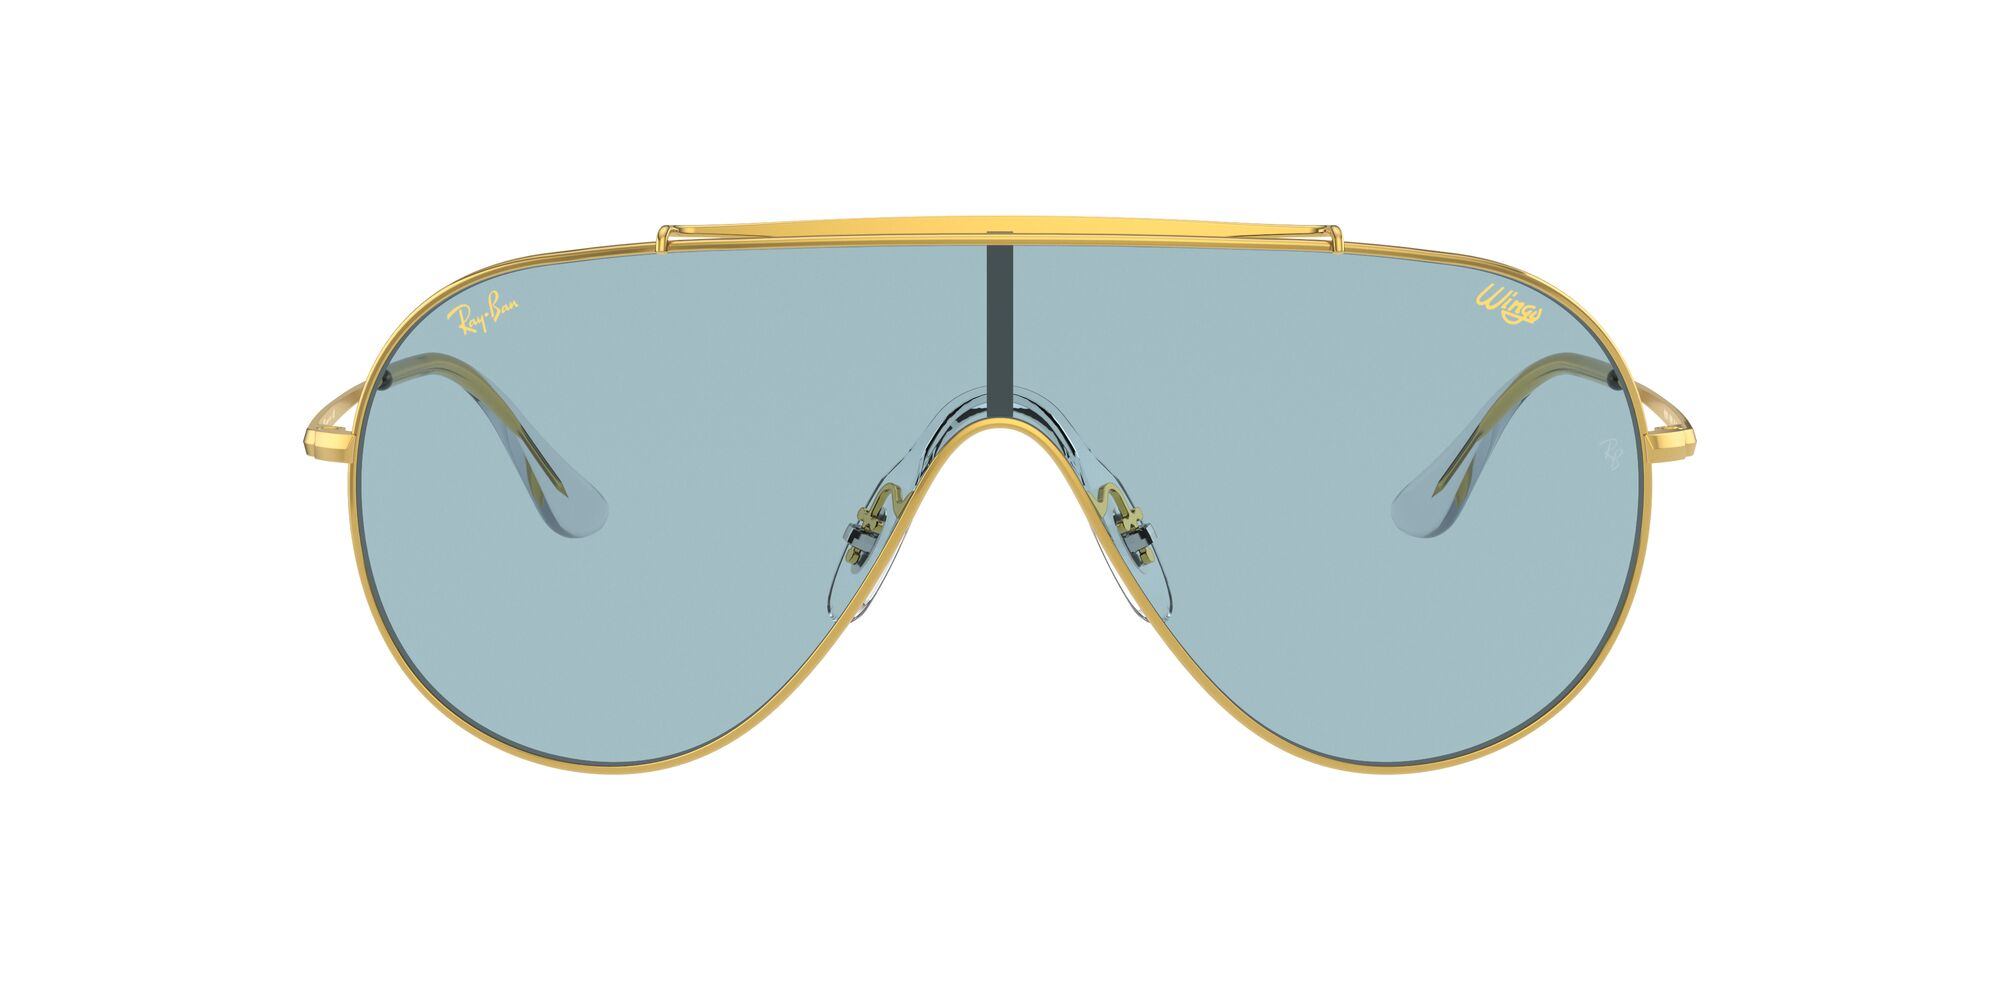 Front Ray-Ban Ray-Ban 0RB3597 919680 0/0 Goud/Blauw